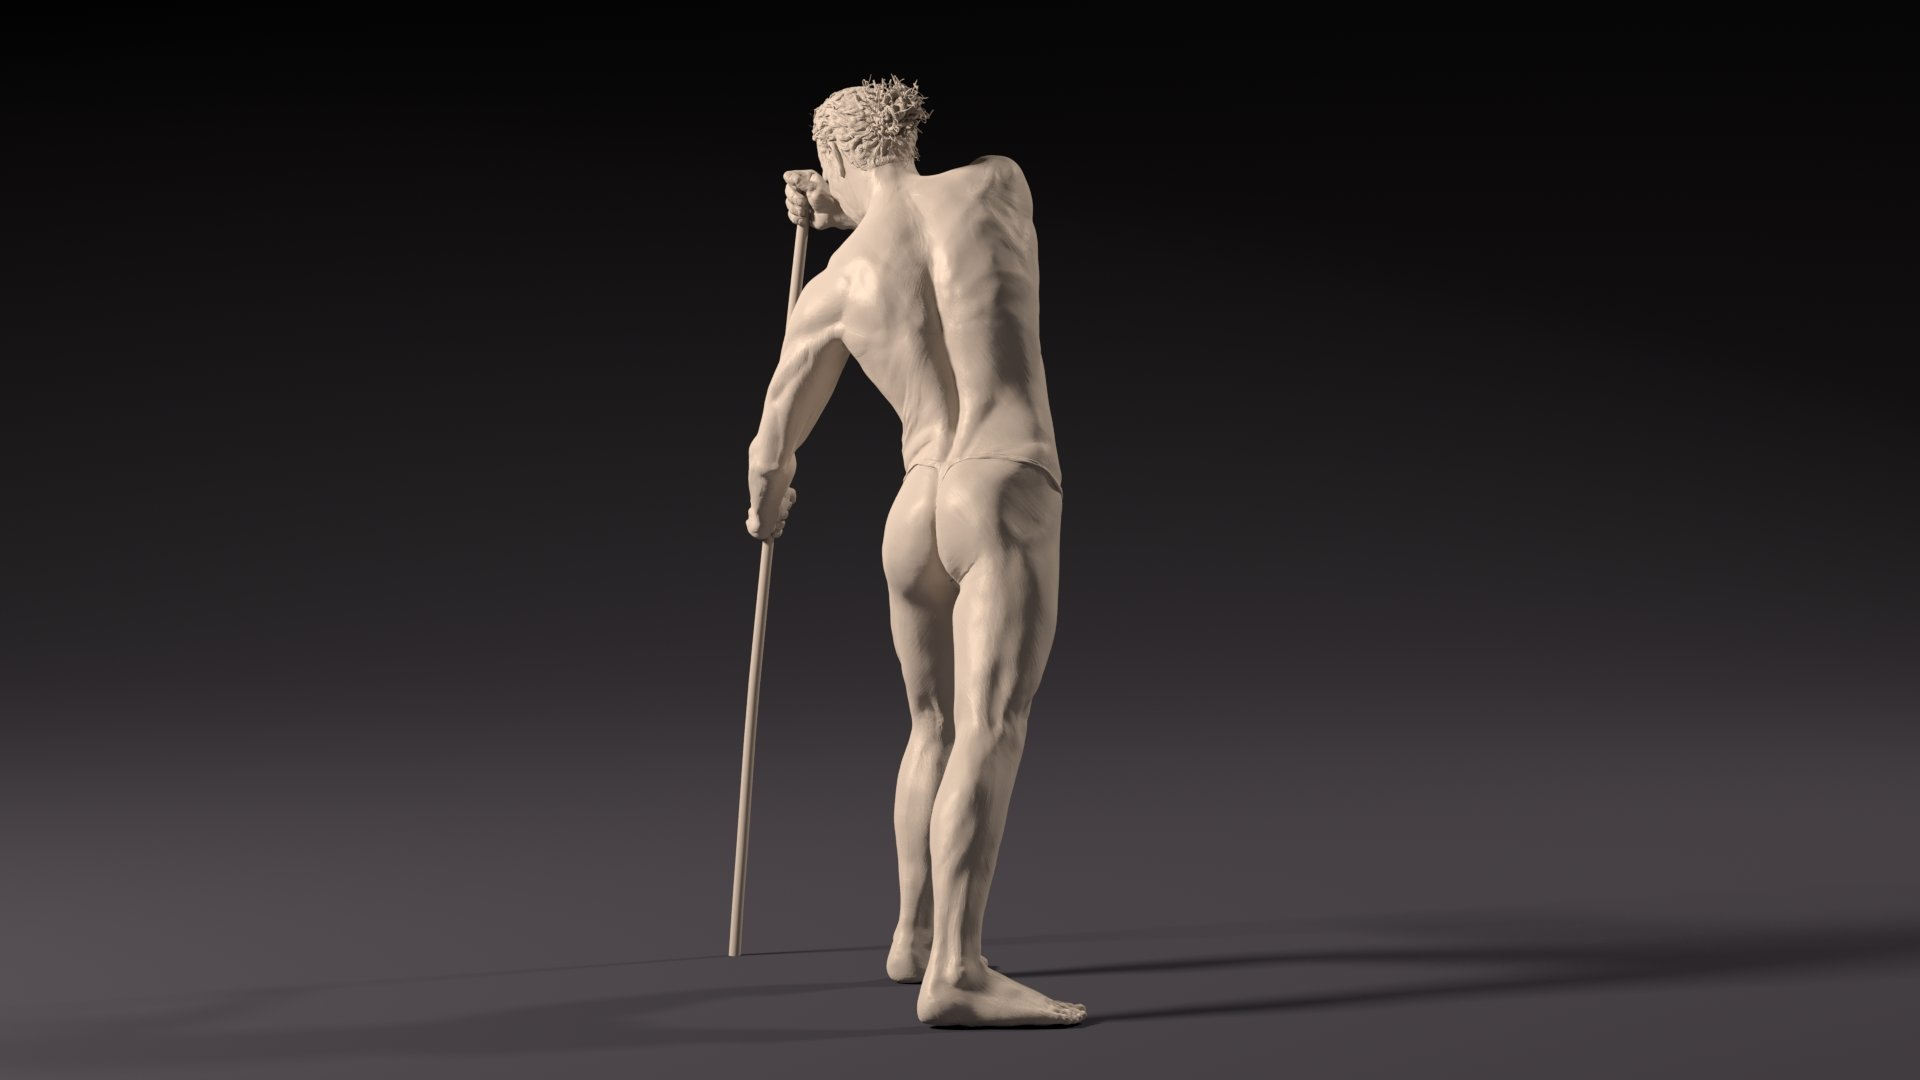 ArtStation - Digital Figure Sculpture - Man Anatomy, Victor Manuel Vera